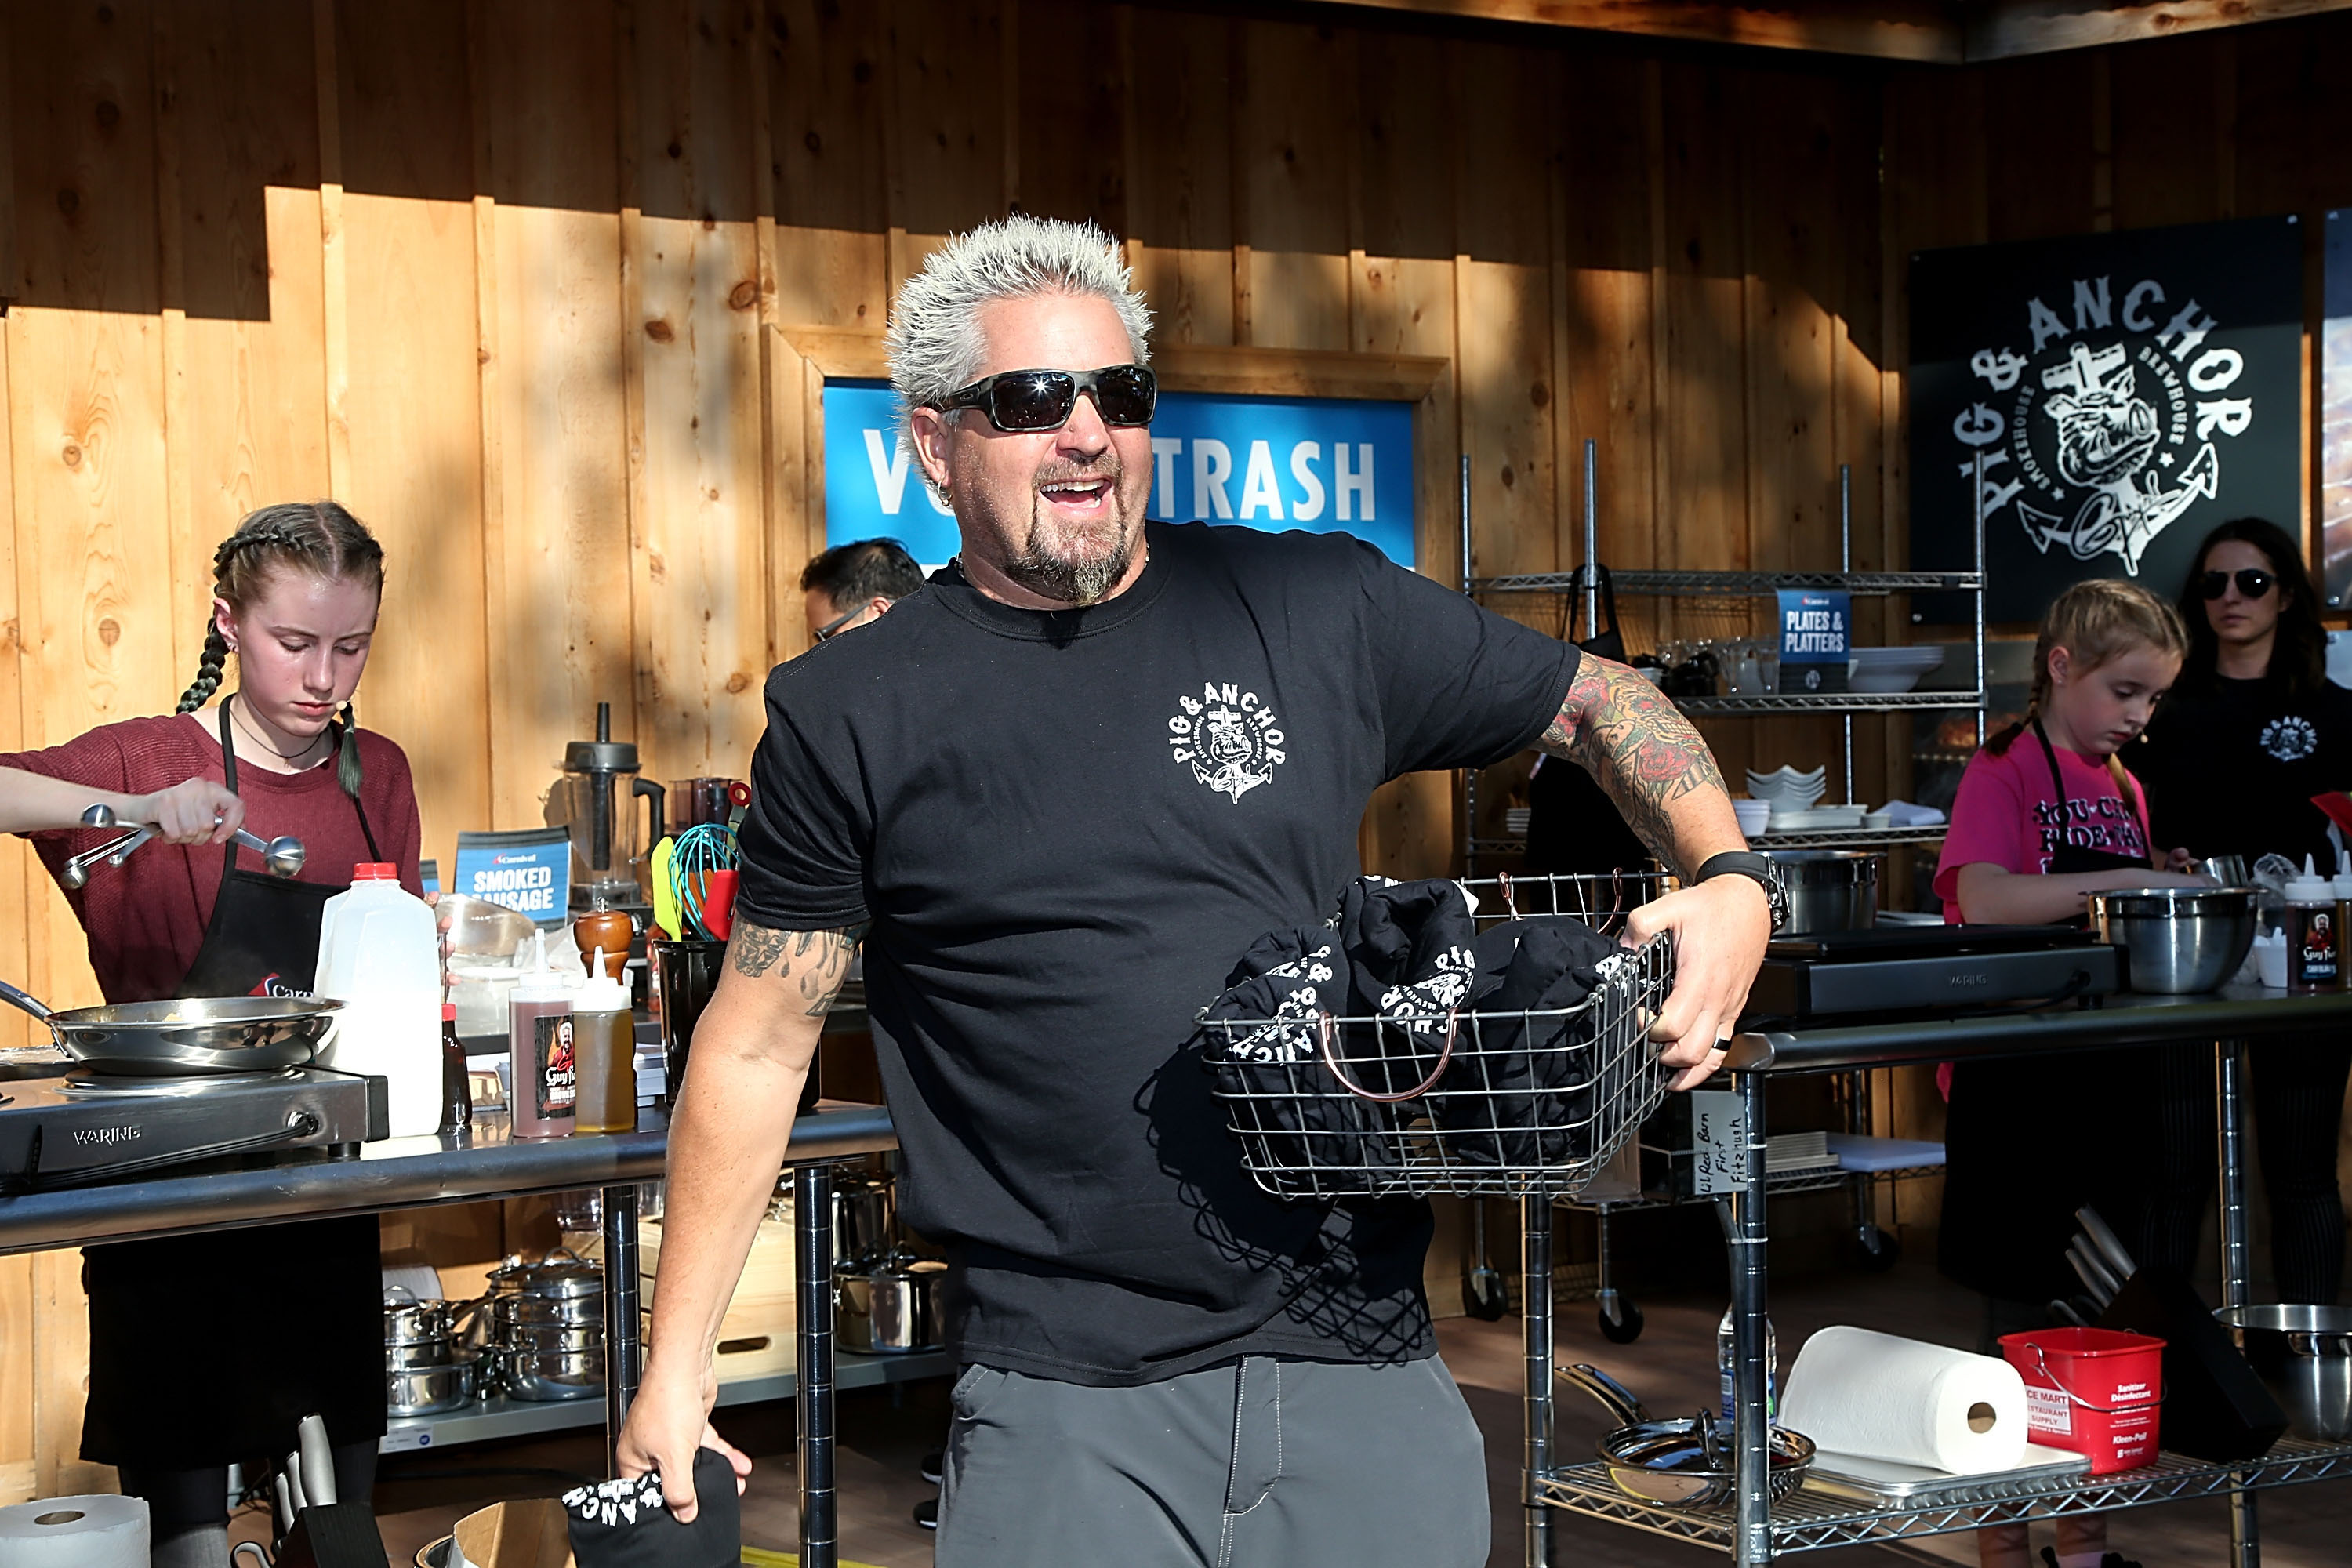 Kids from Texas 4H Club Awarded Free Cruises As Part of Fun Event Hosted by Guy Fieri Announcing New Smokehouse Brewhouse BBQ Restaurant Aboard Carnival Horizon